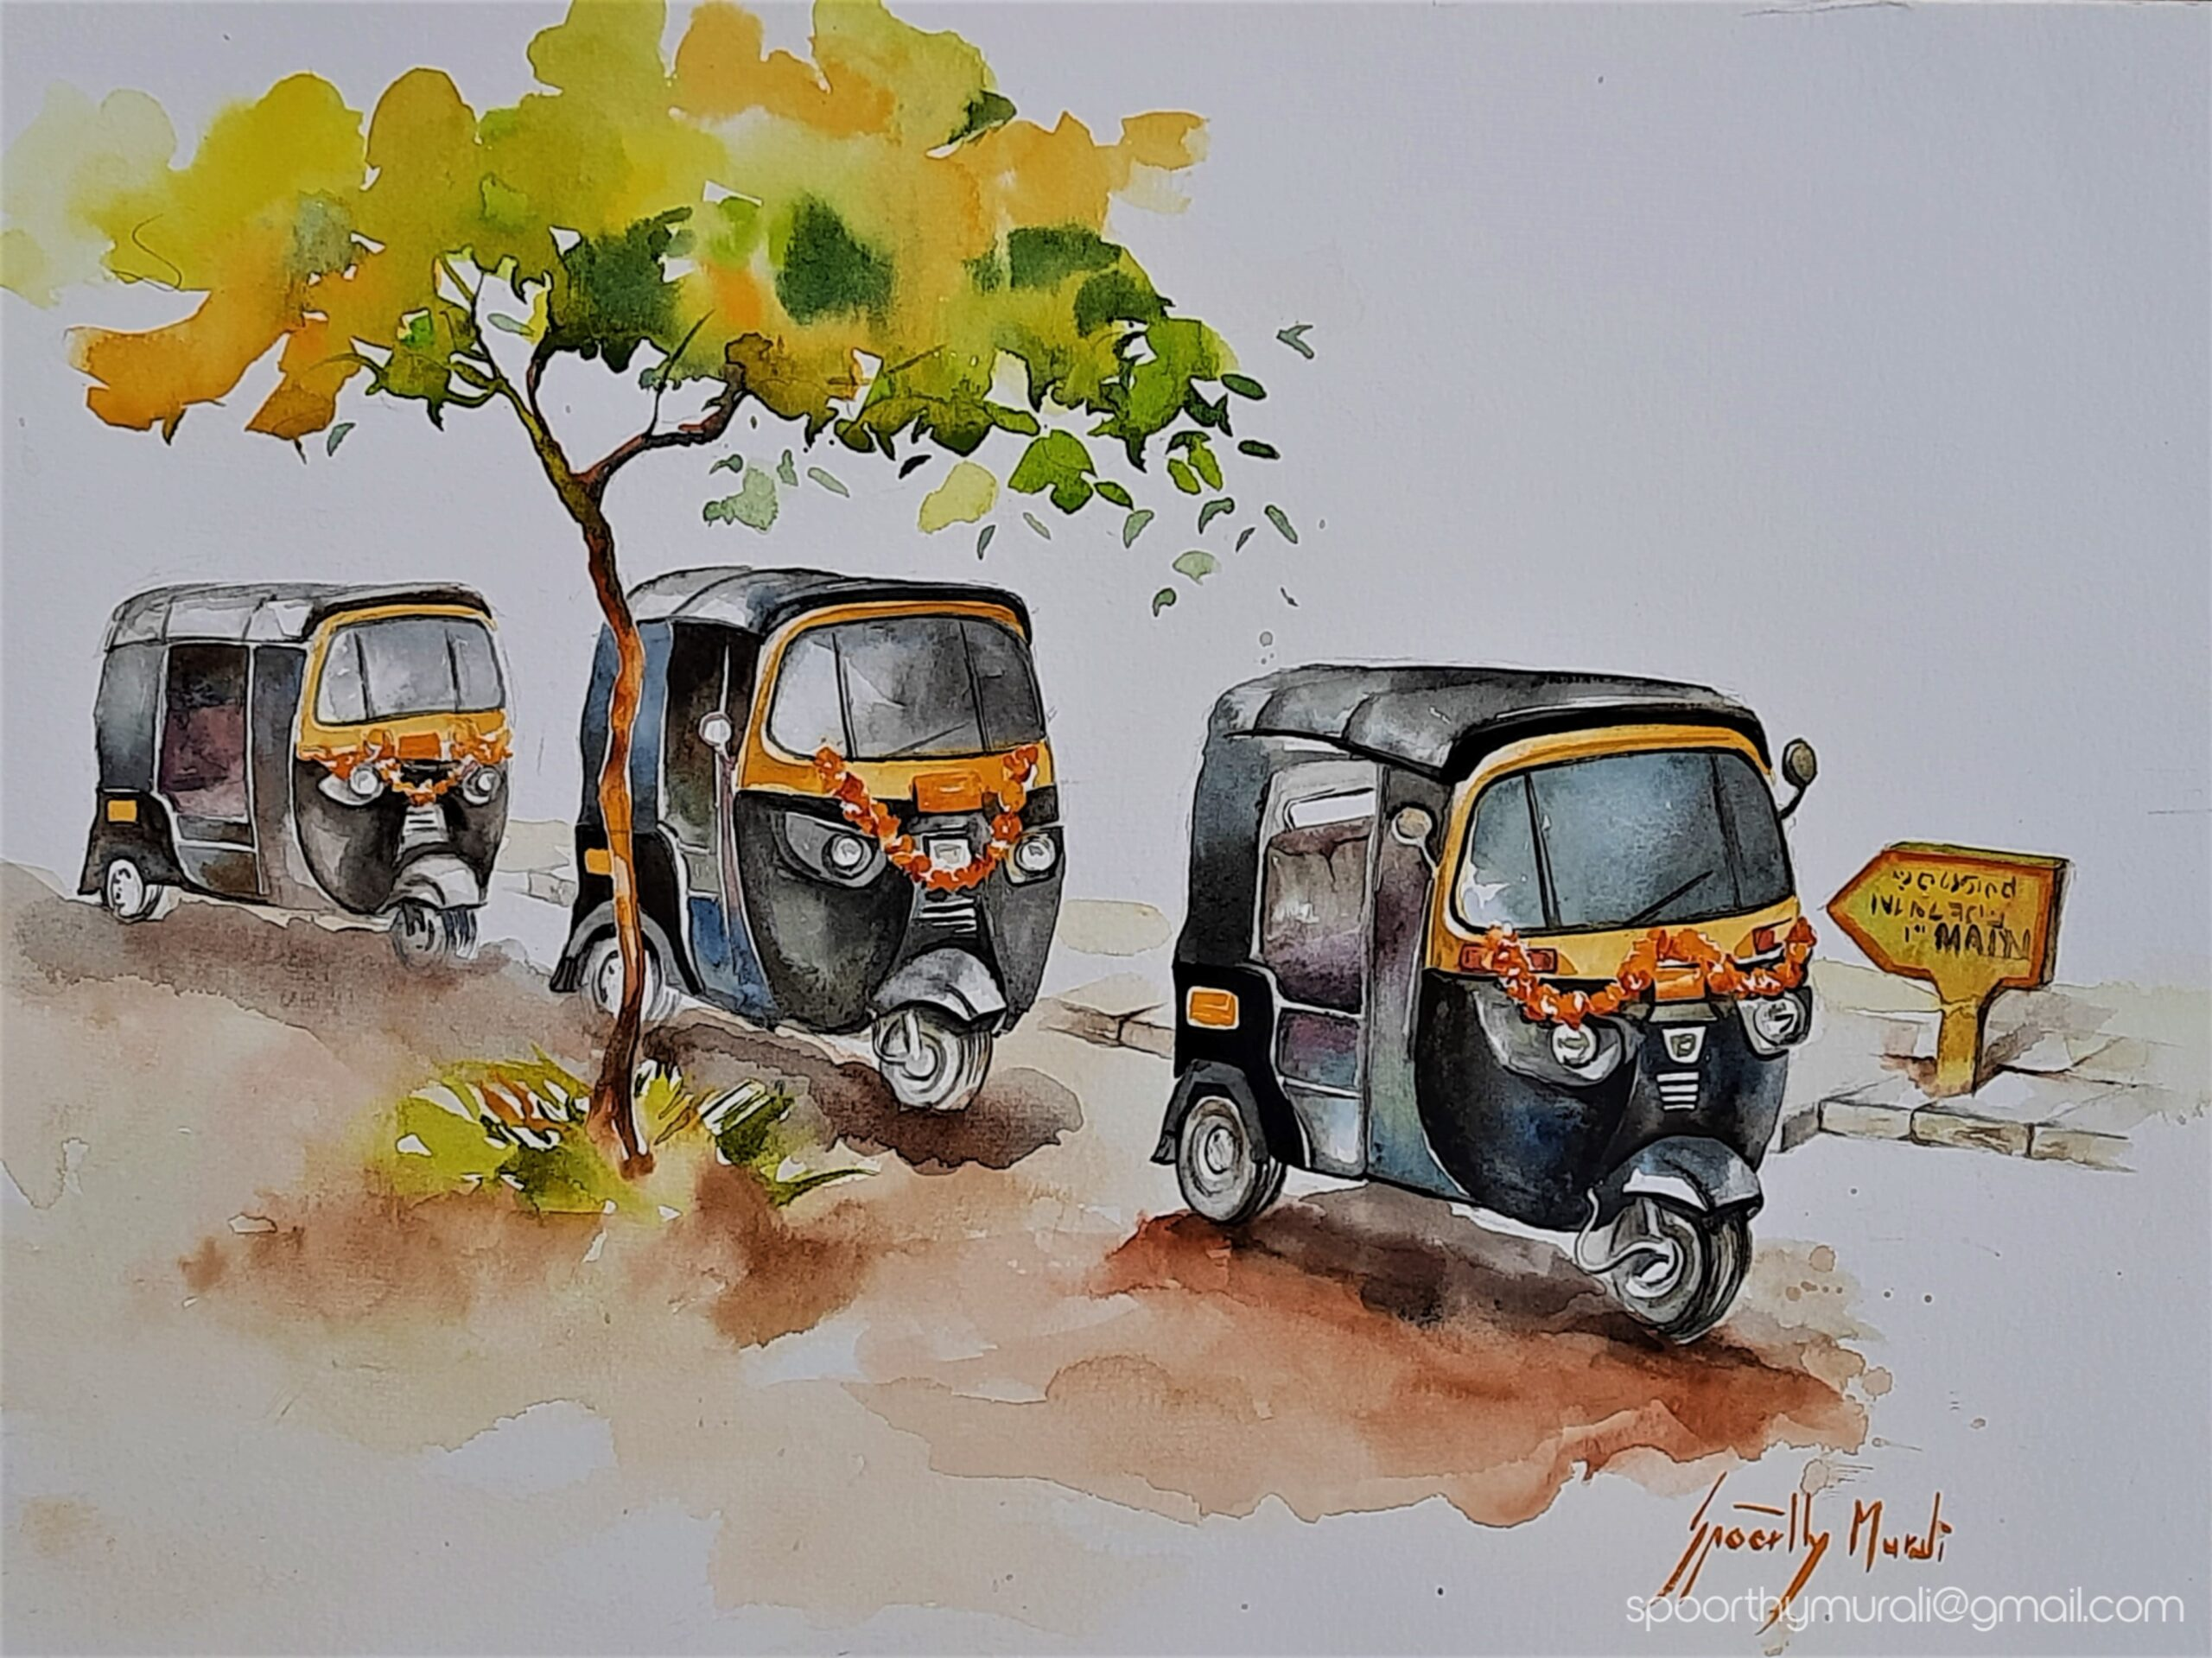 Festooned Autorickshaws in Watercolour